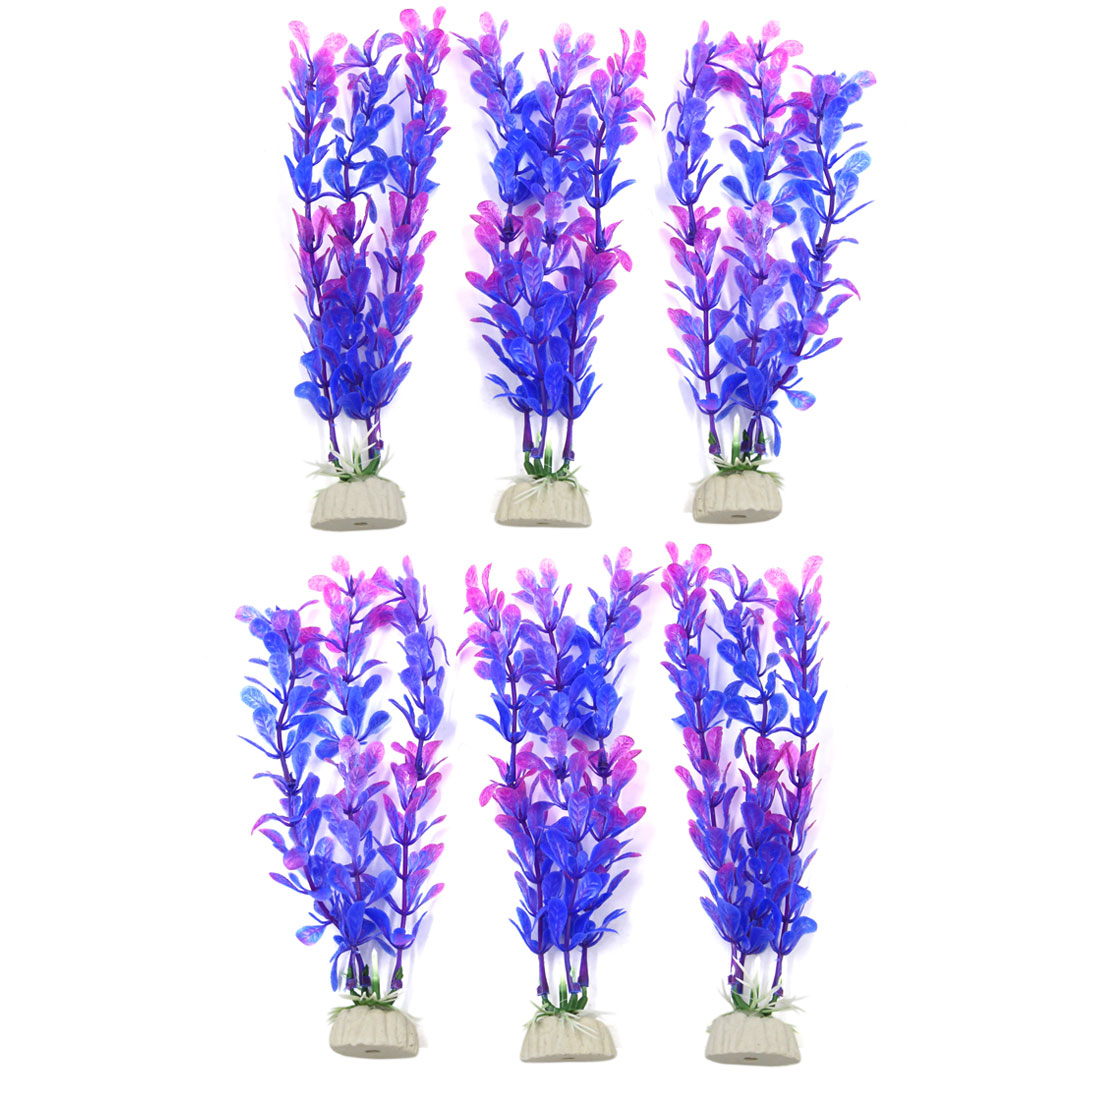 6pcs Purple Plastic Aquarium Grass Plants Fish Tank Water Plant Decor Landscape